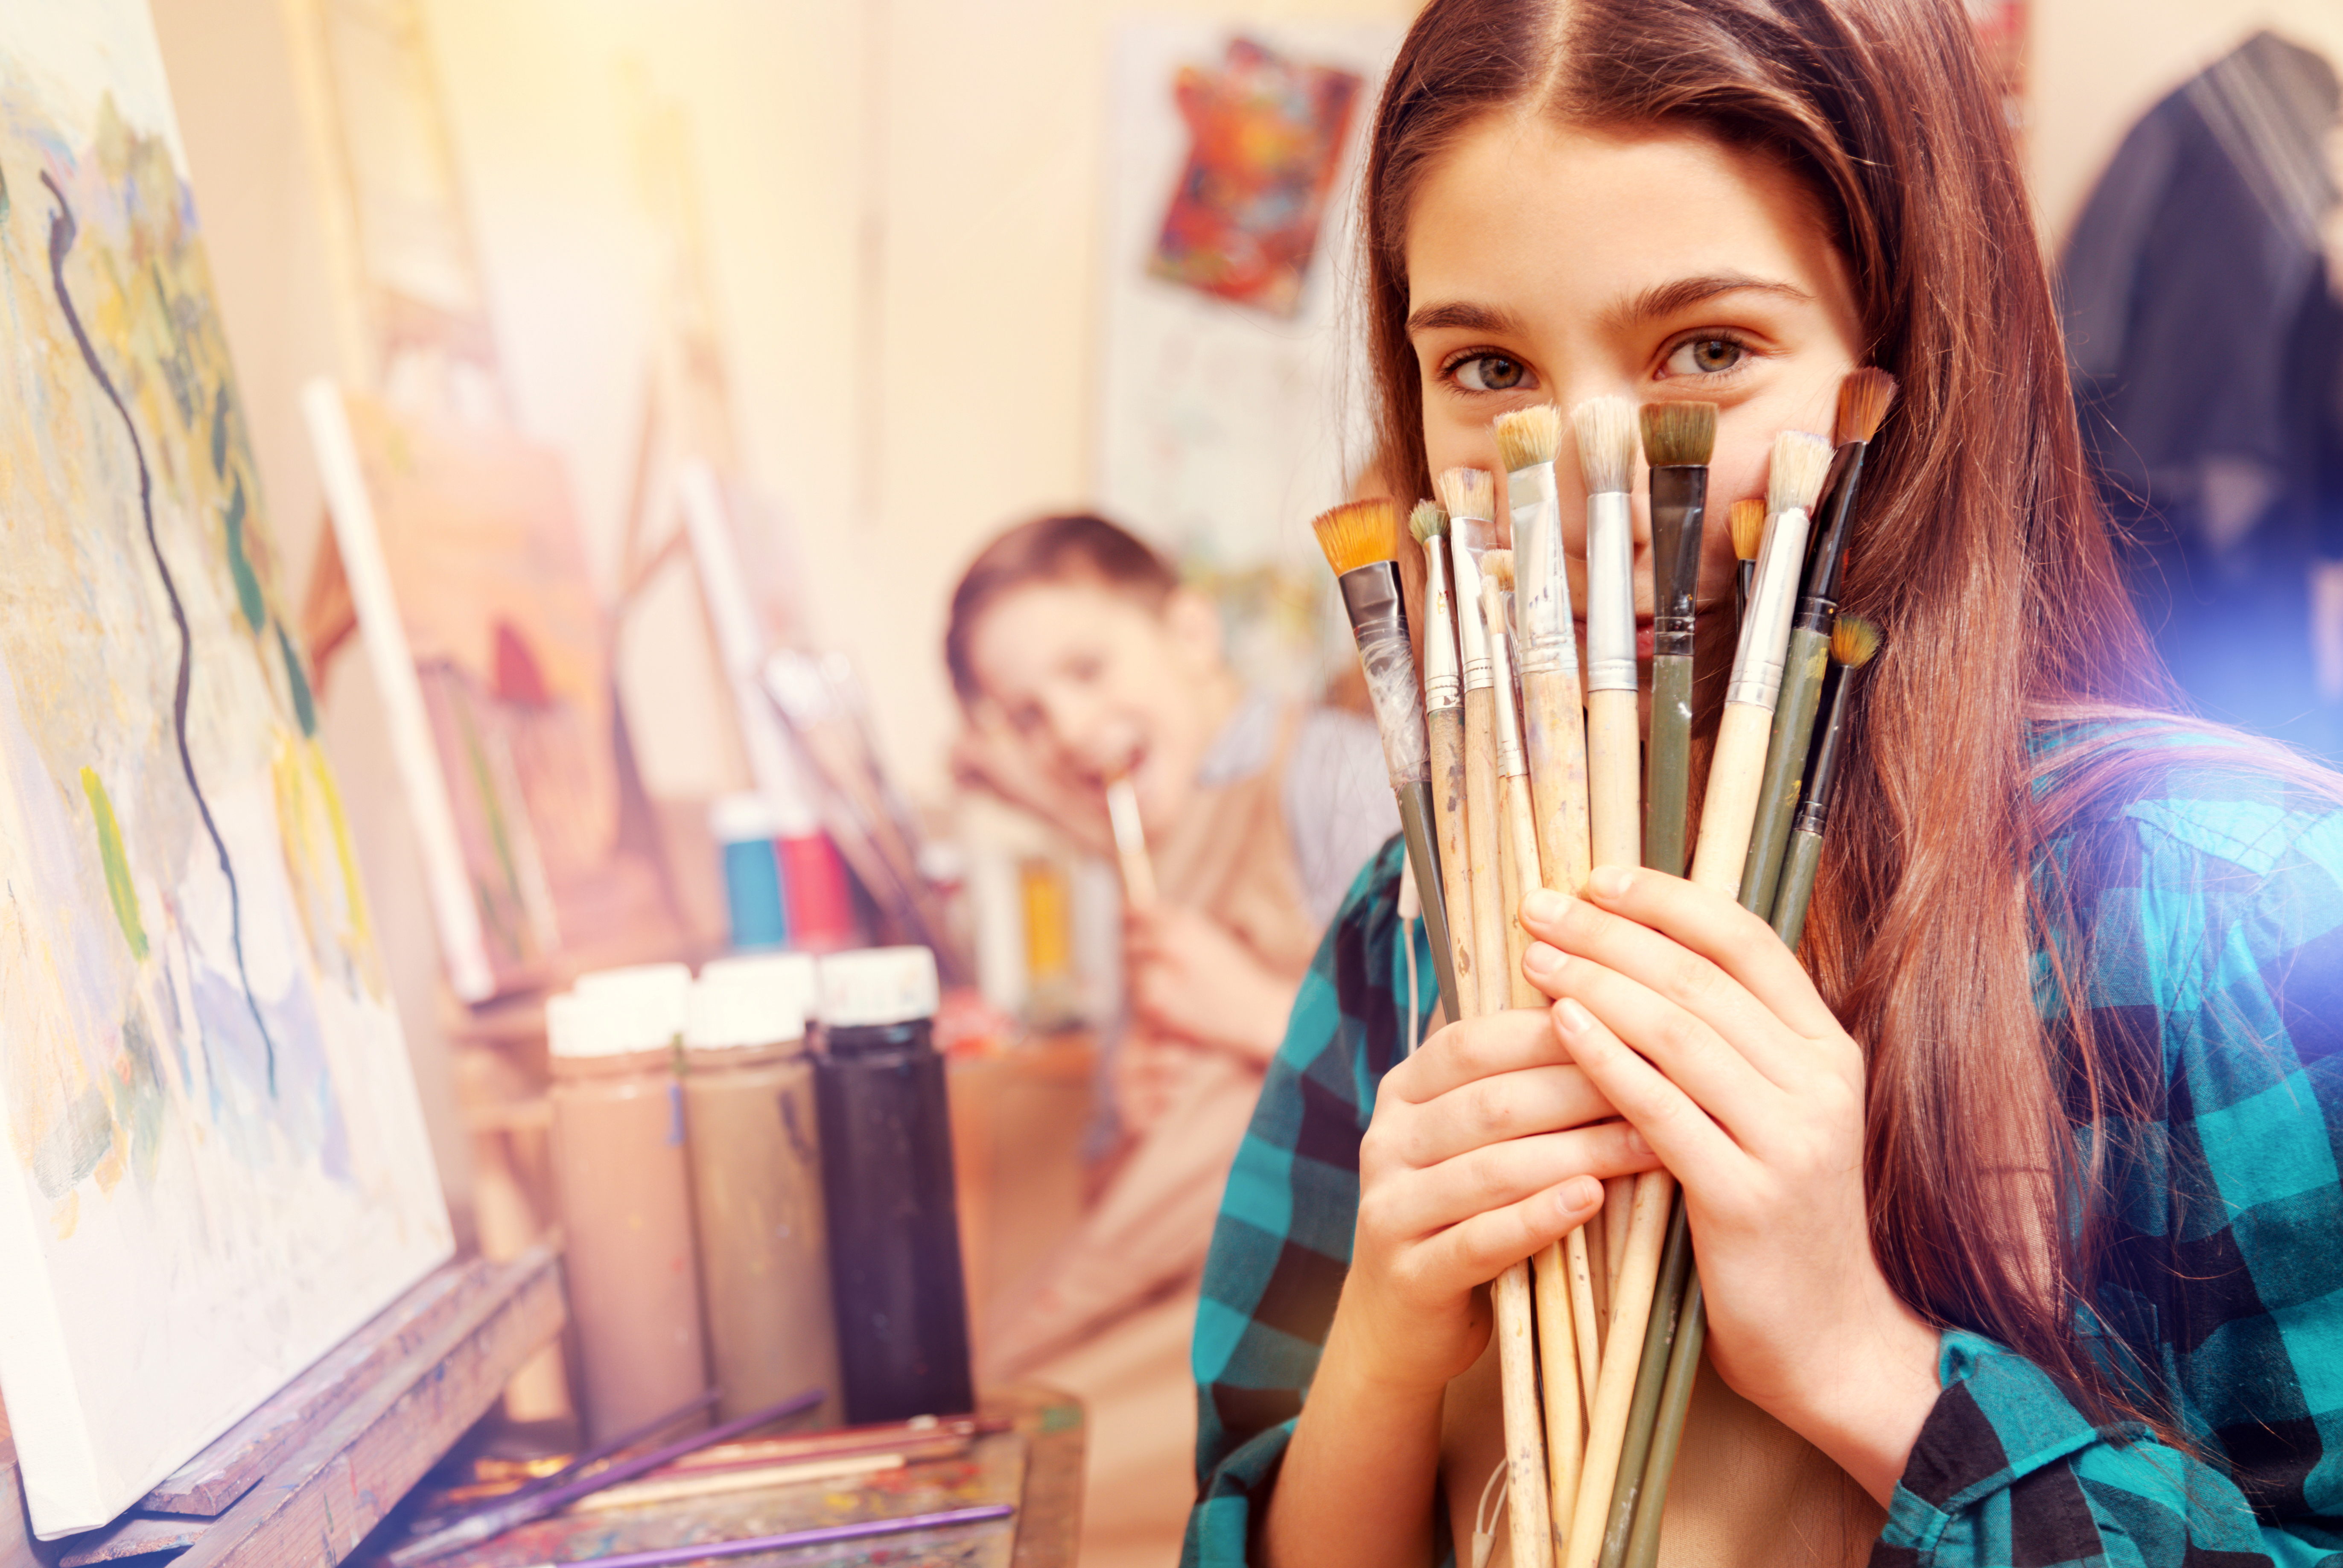 True little painter. Selective focus on a young lady of magical beauty hiding her face behind painting brushes while sitting at a painting easel and posing for the camera.